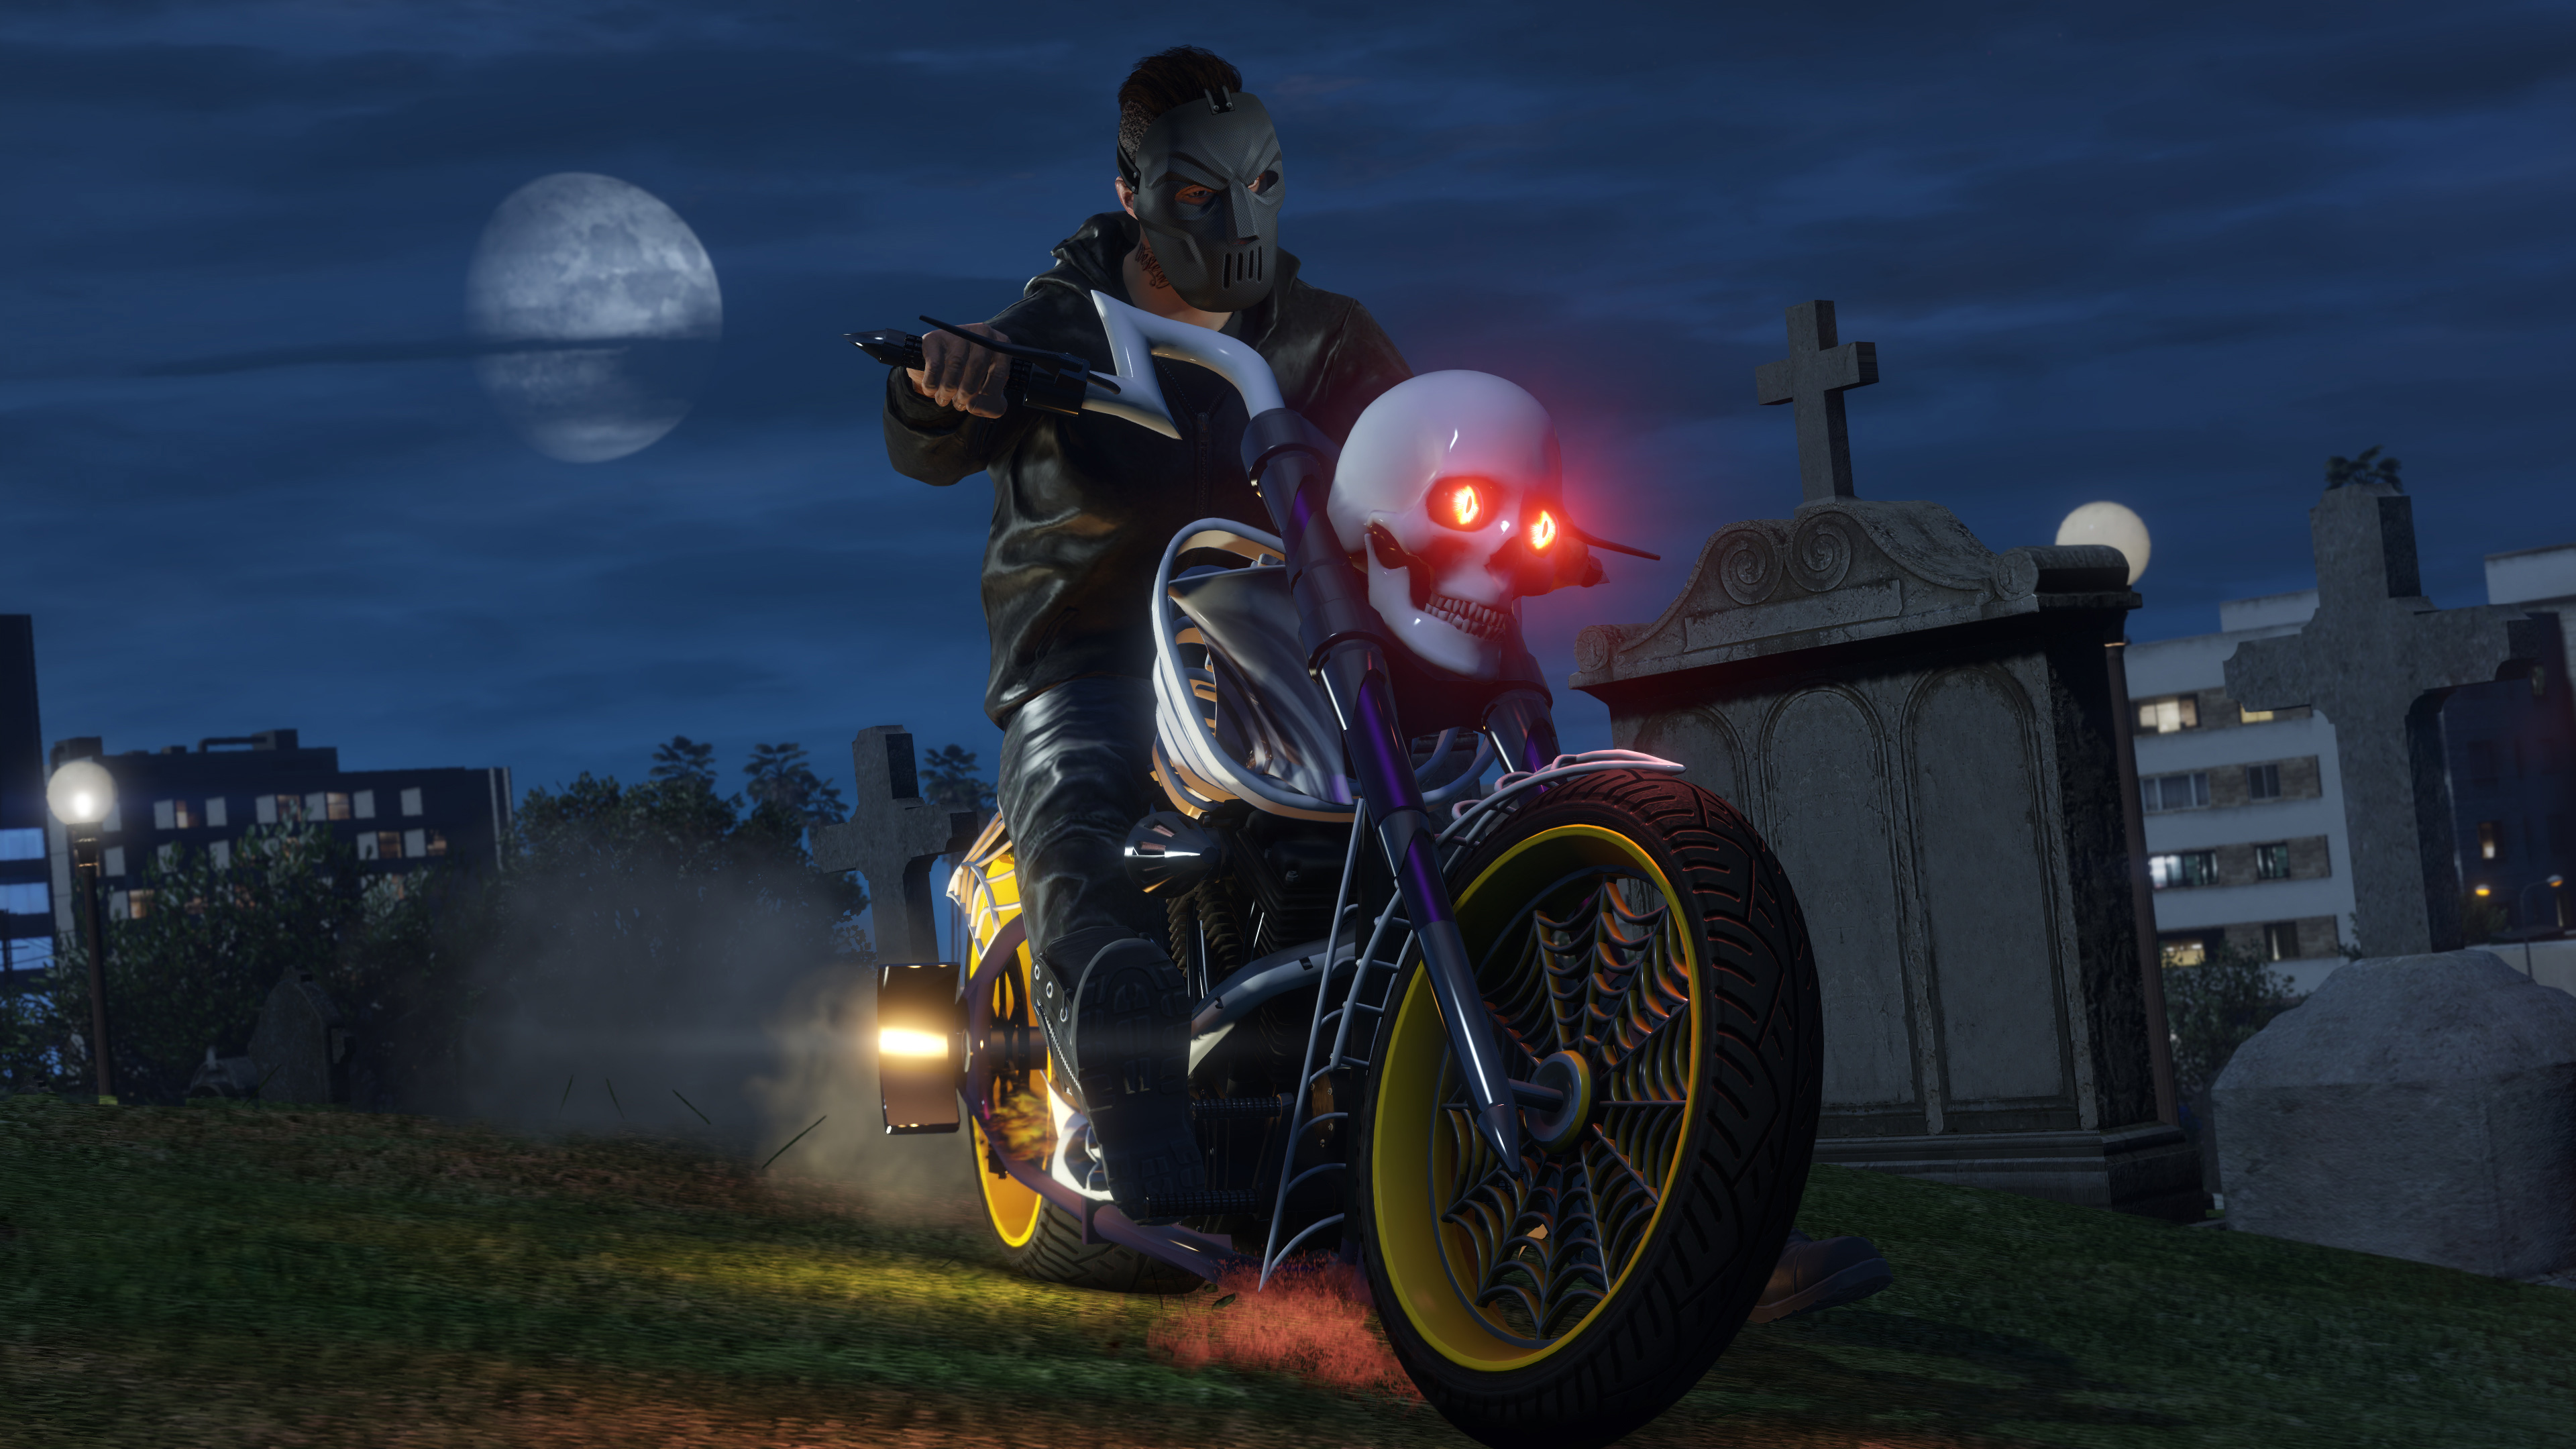 gta 5 online halloween dlc bike, hd games, 4k wallpapers, images